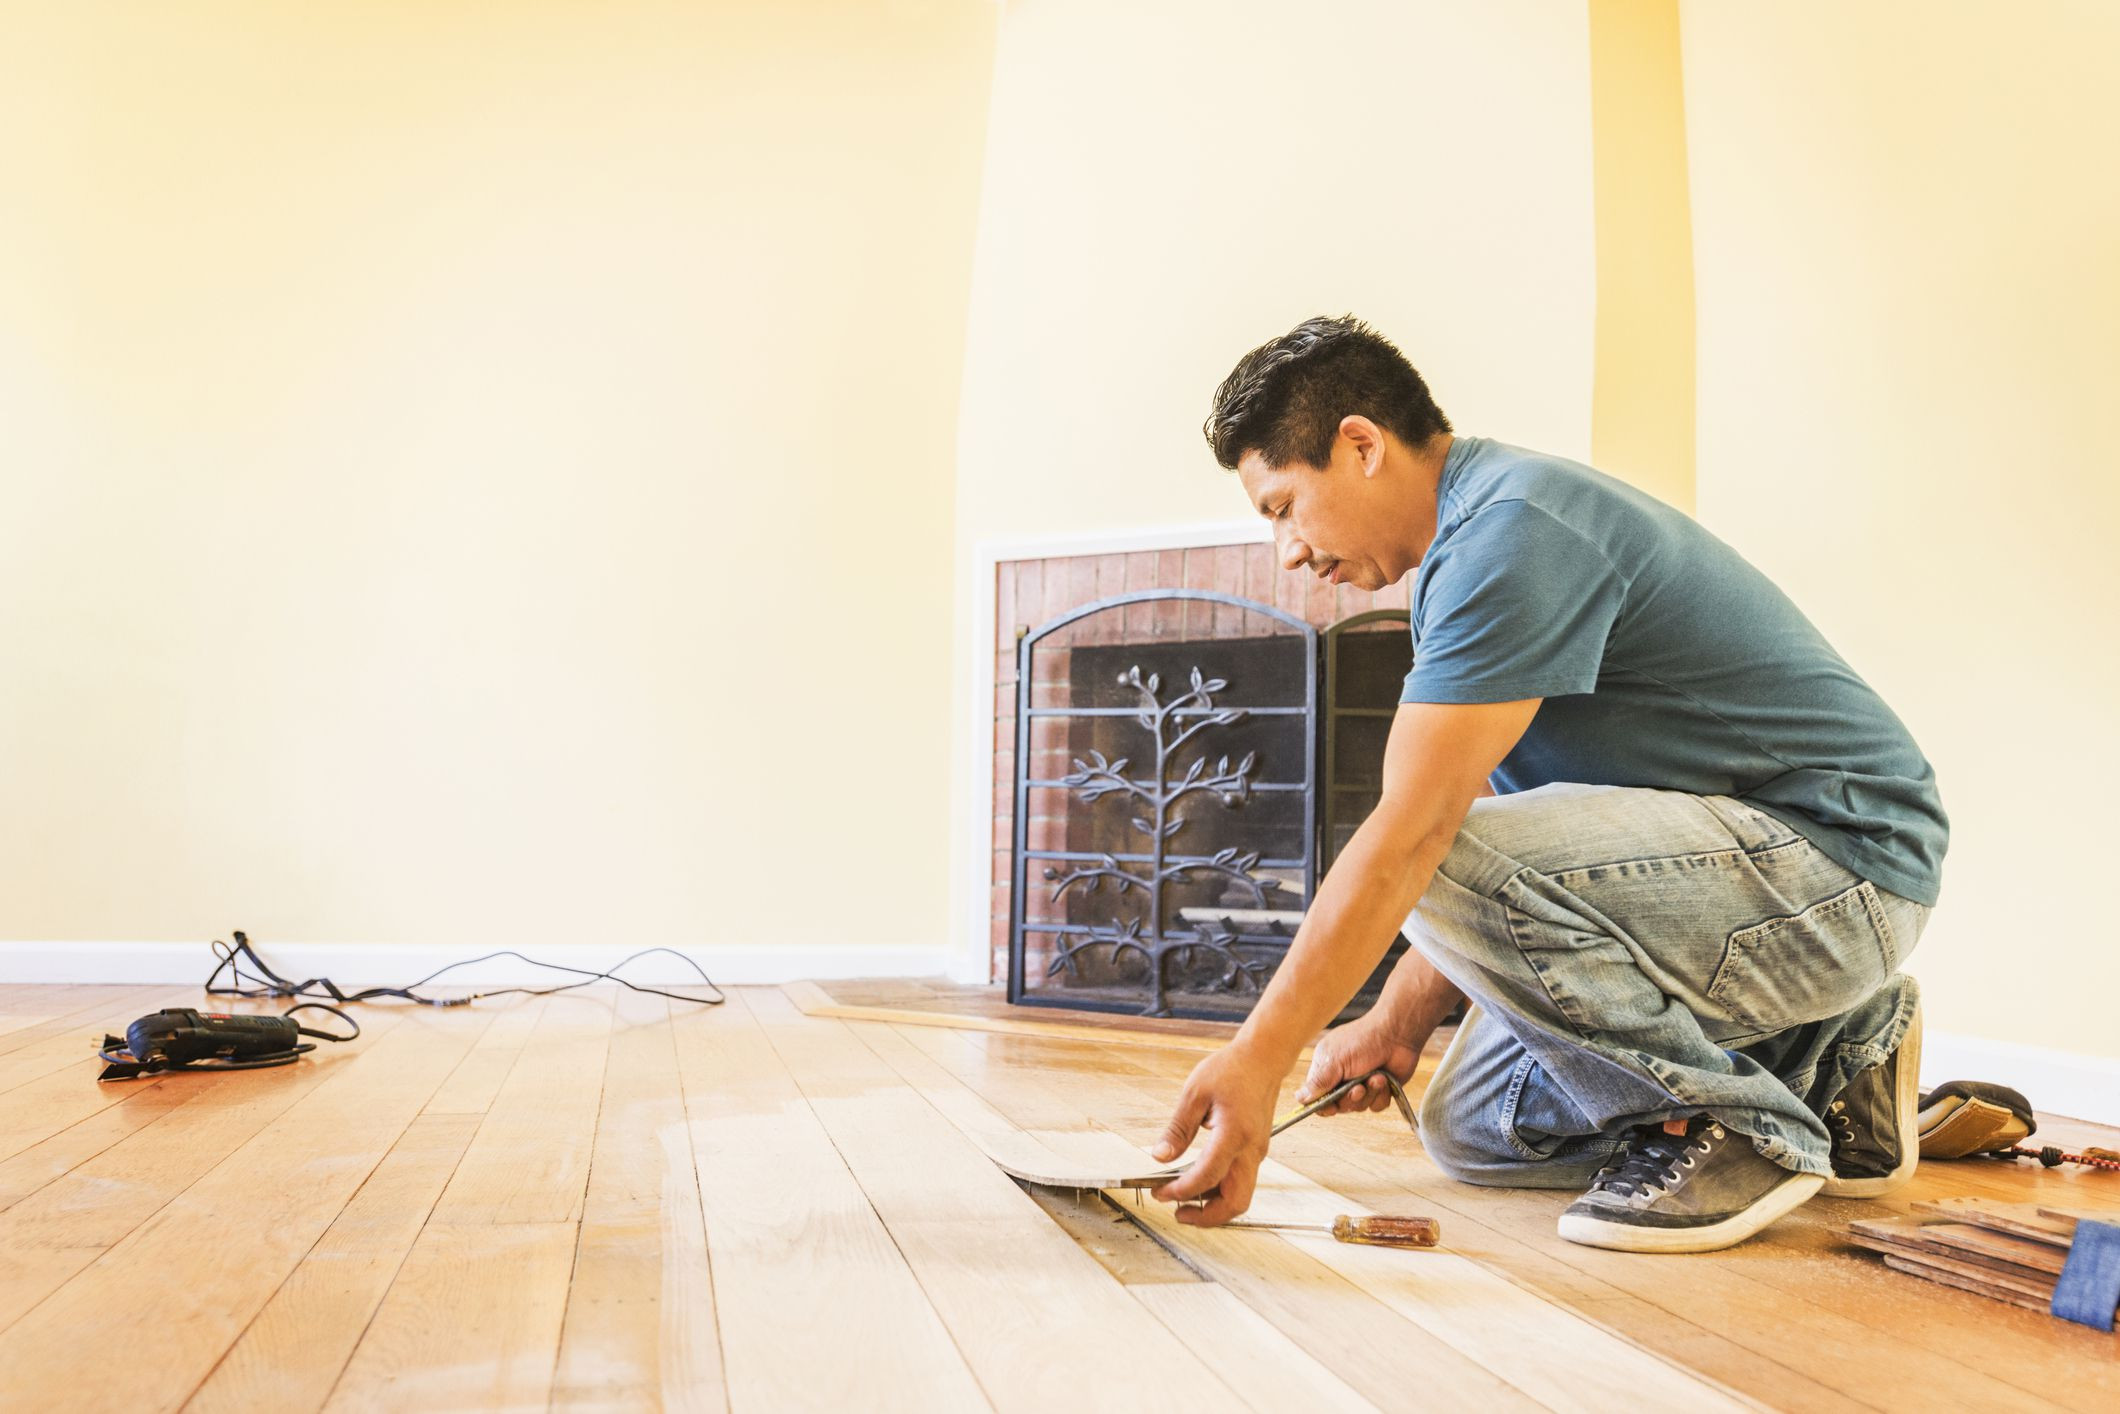 direction hardwood floors should be laid of hardwood installer how to hire and what to expect for installing wood flooring 592016327 57af51a23df78cd39cfa08d9